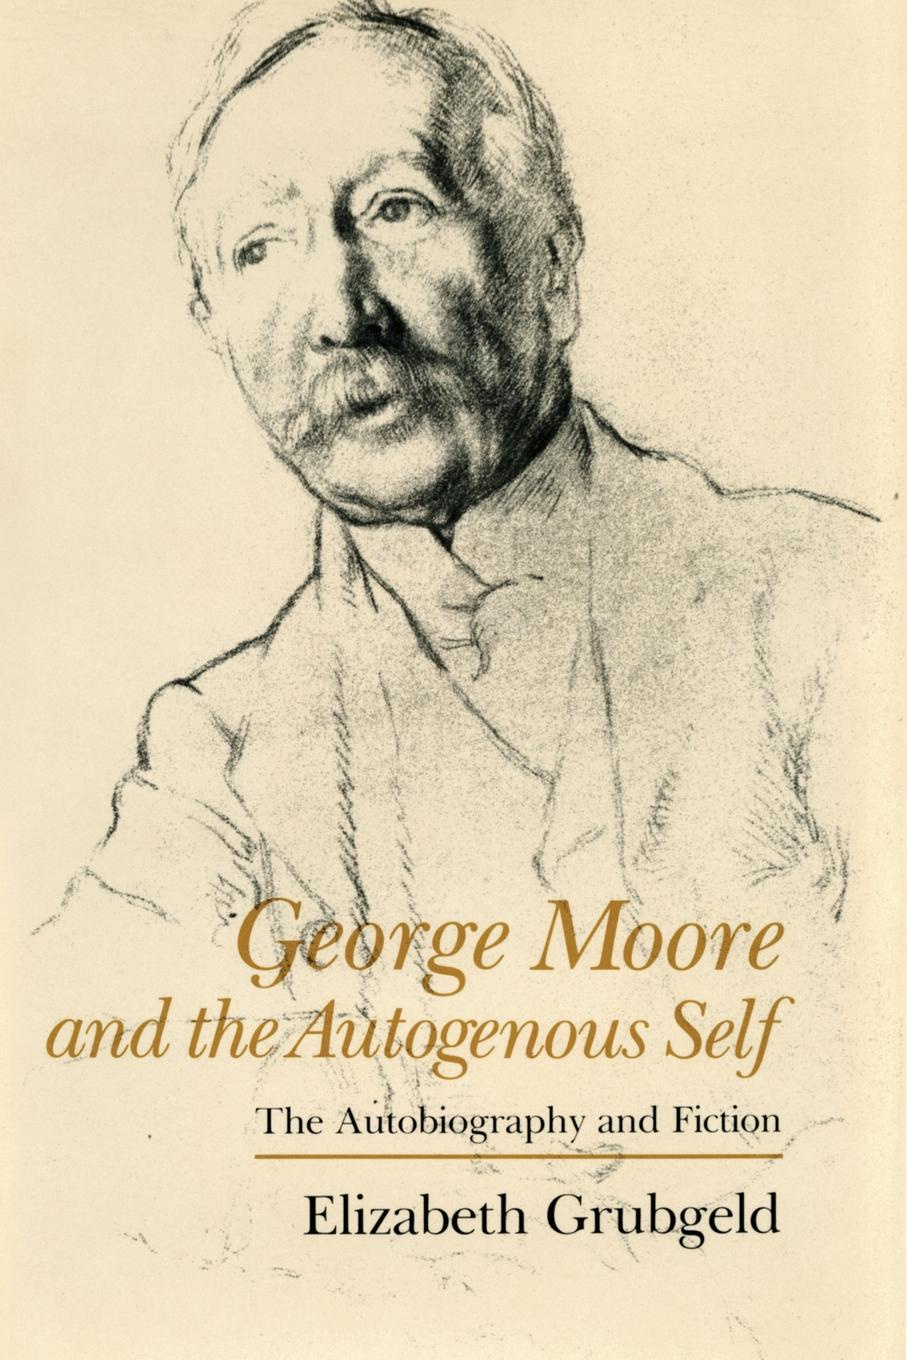 Elizabeth Grubgeld George Moore and the Autogenous Self. The Autobiography and Fiction between self and others